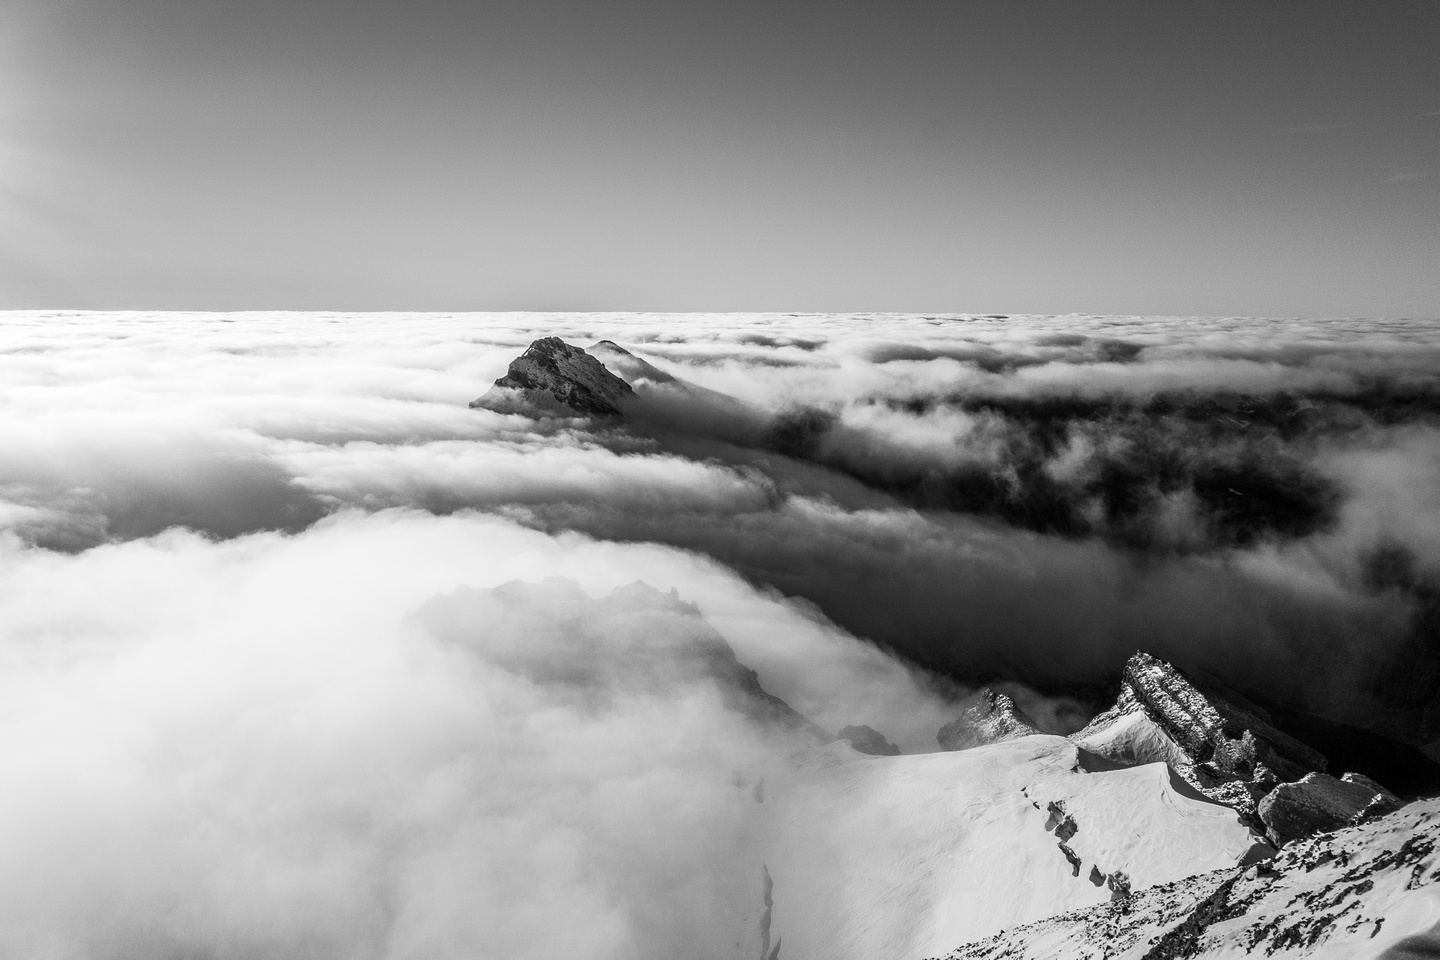 Crown Peak and South Willingdon above the clouds.